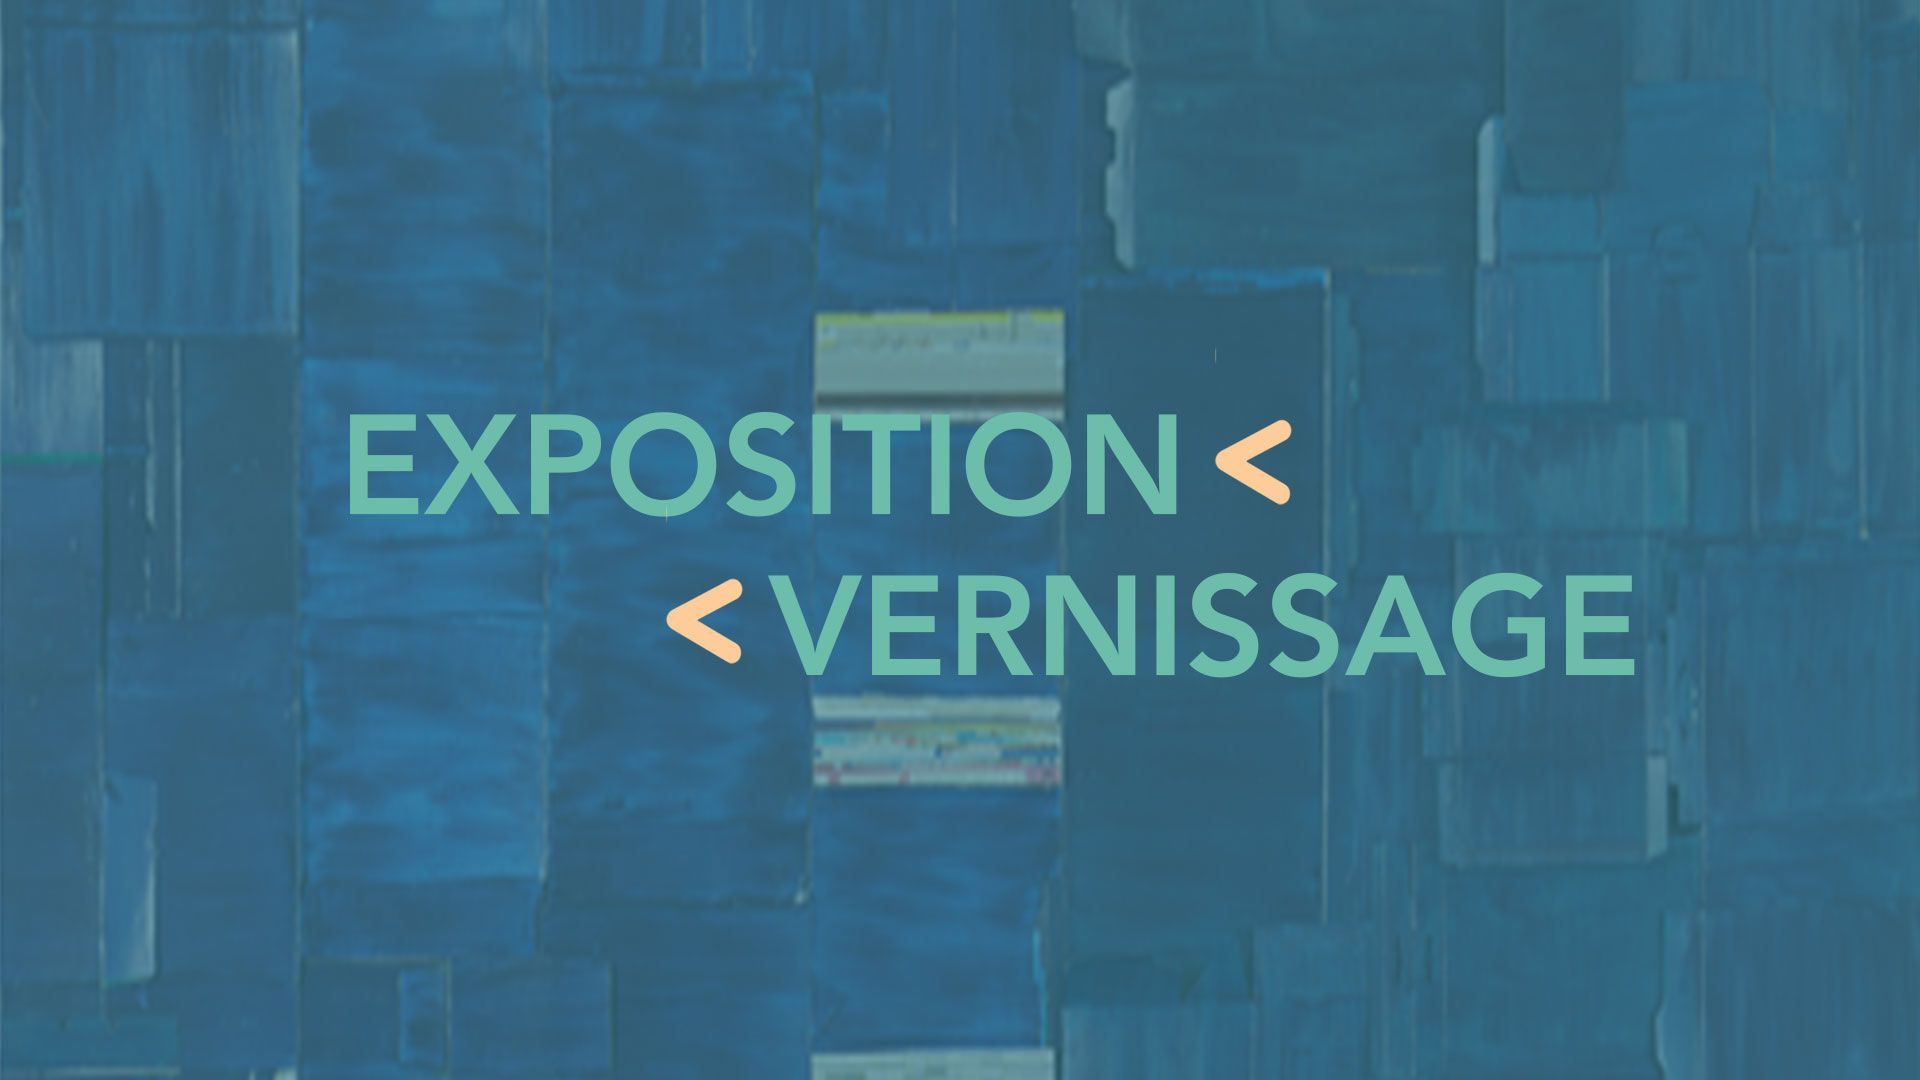 Exposition-vernissage.jpg